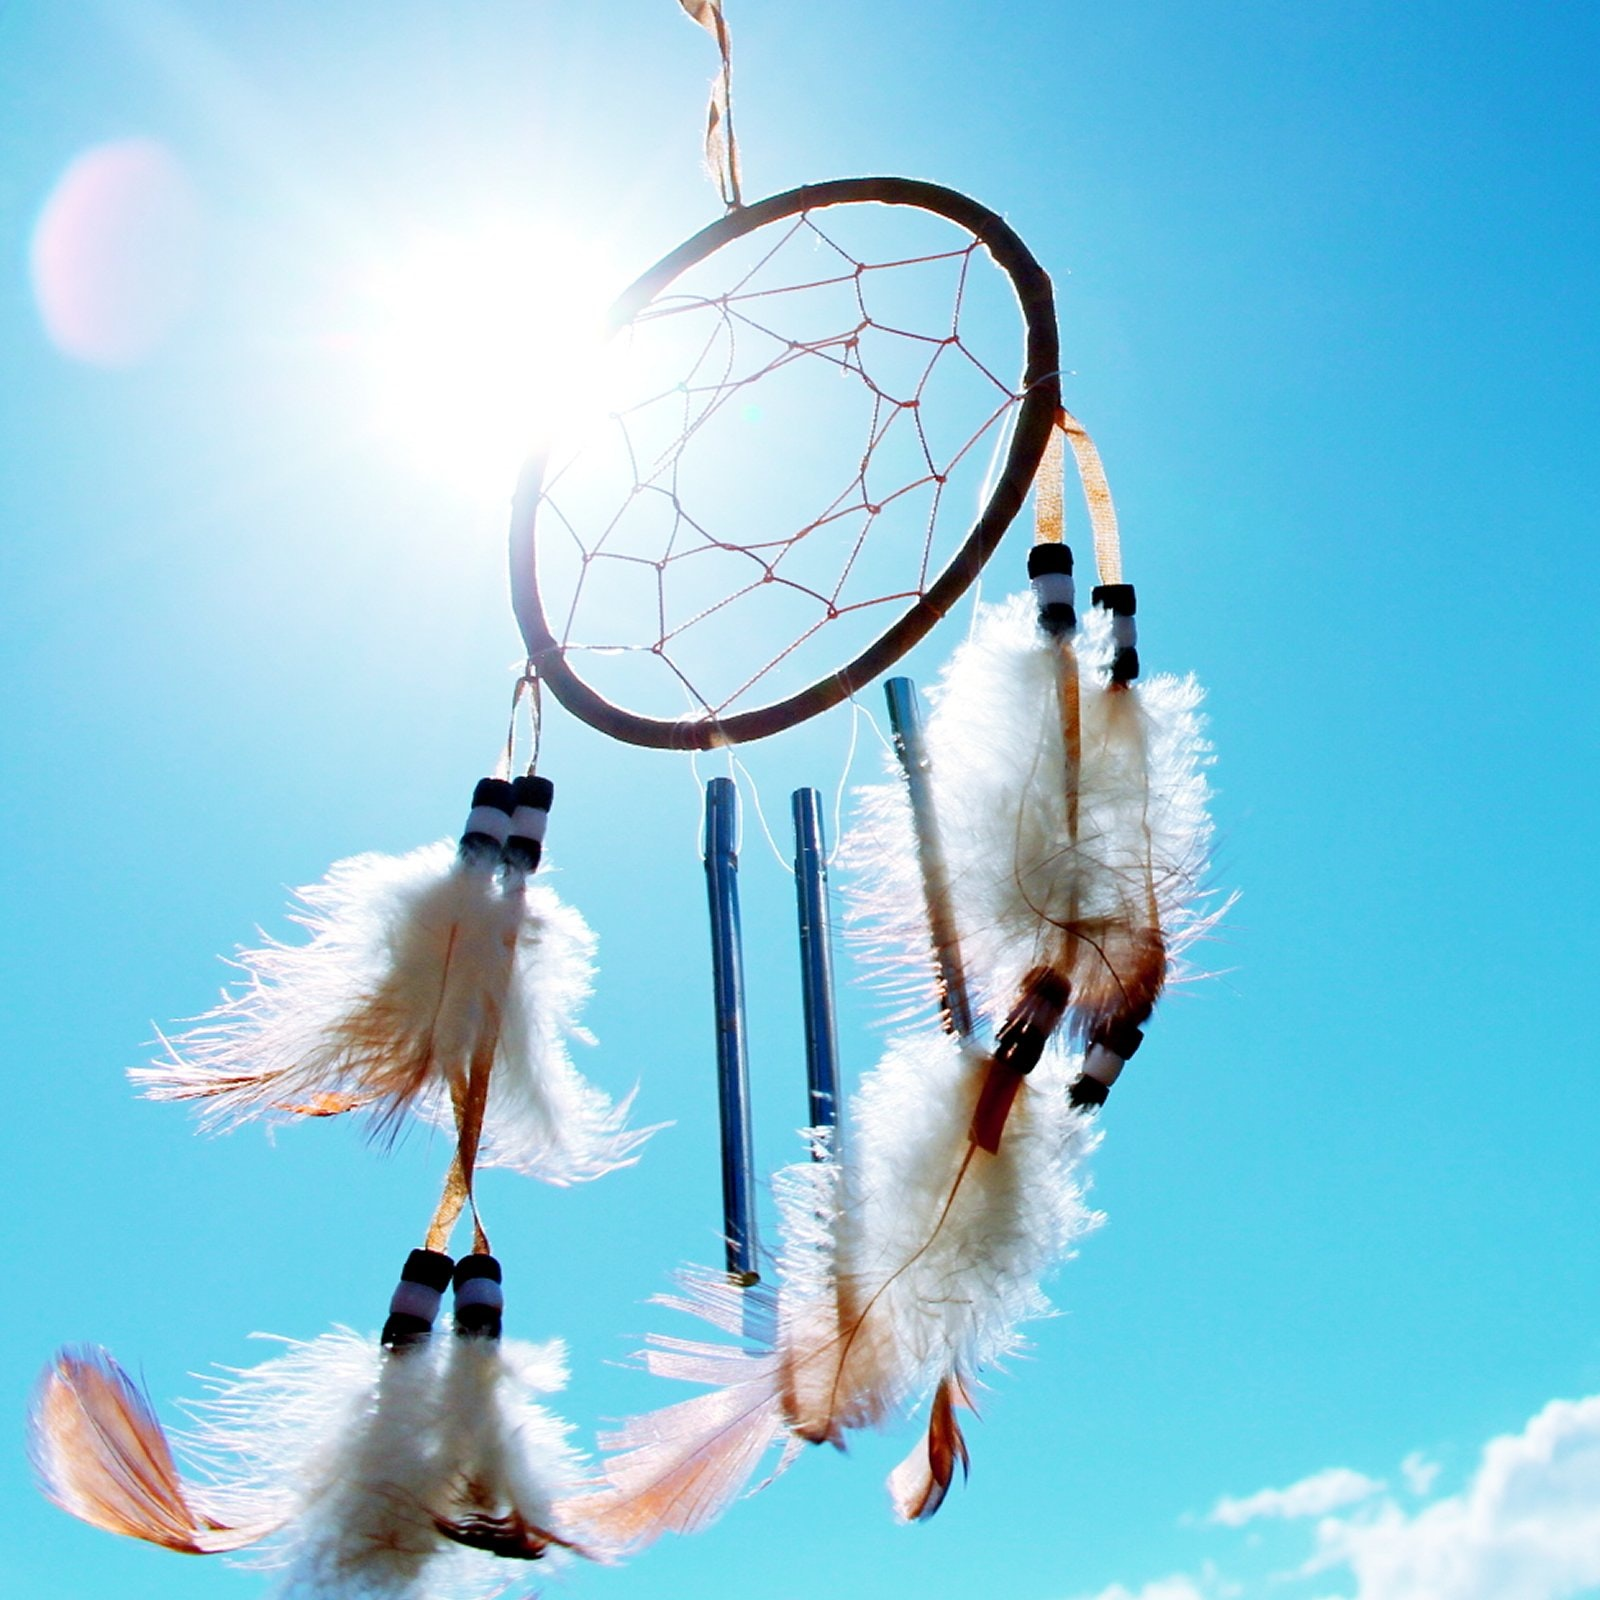 A dreamcatcher with the bright sunny sky in the background in Arizona.